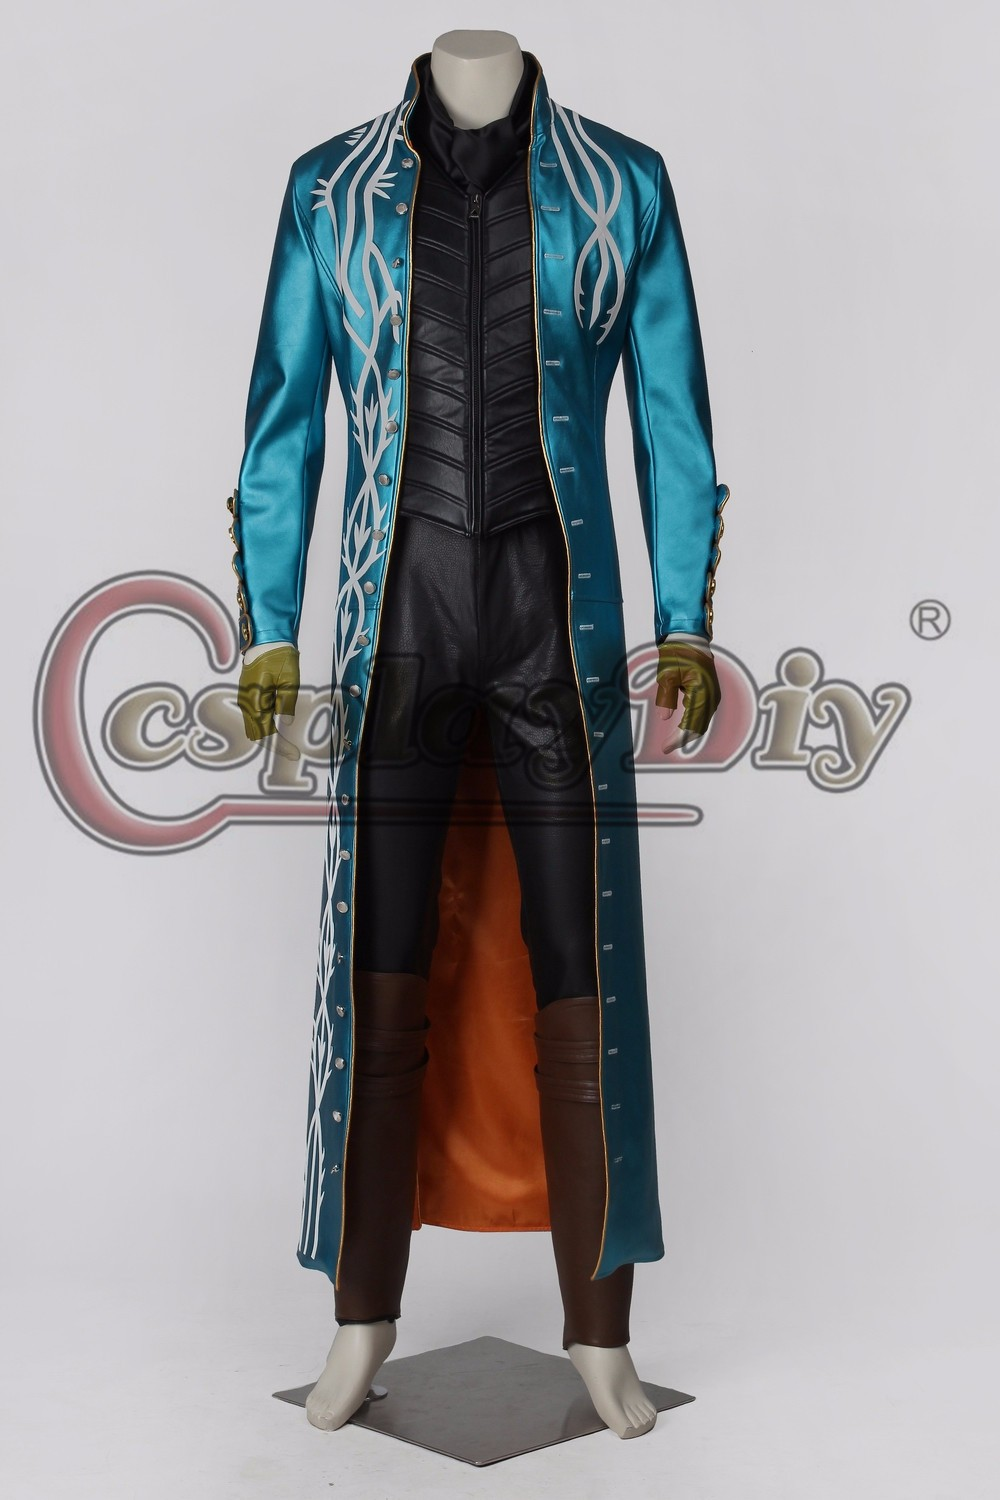 cosplaydiy devil may cry iii 3 vergil cosplay costume high quality adult men halloween outfit custom made d2602